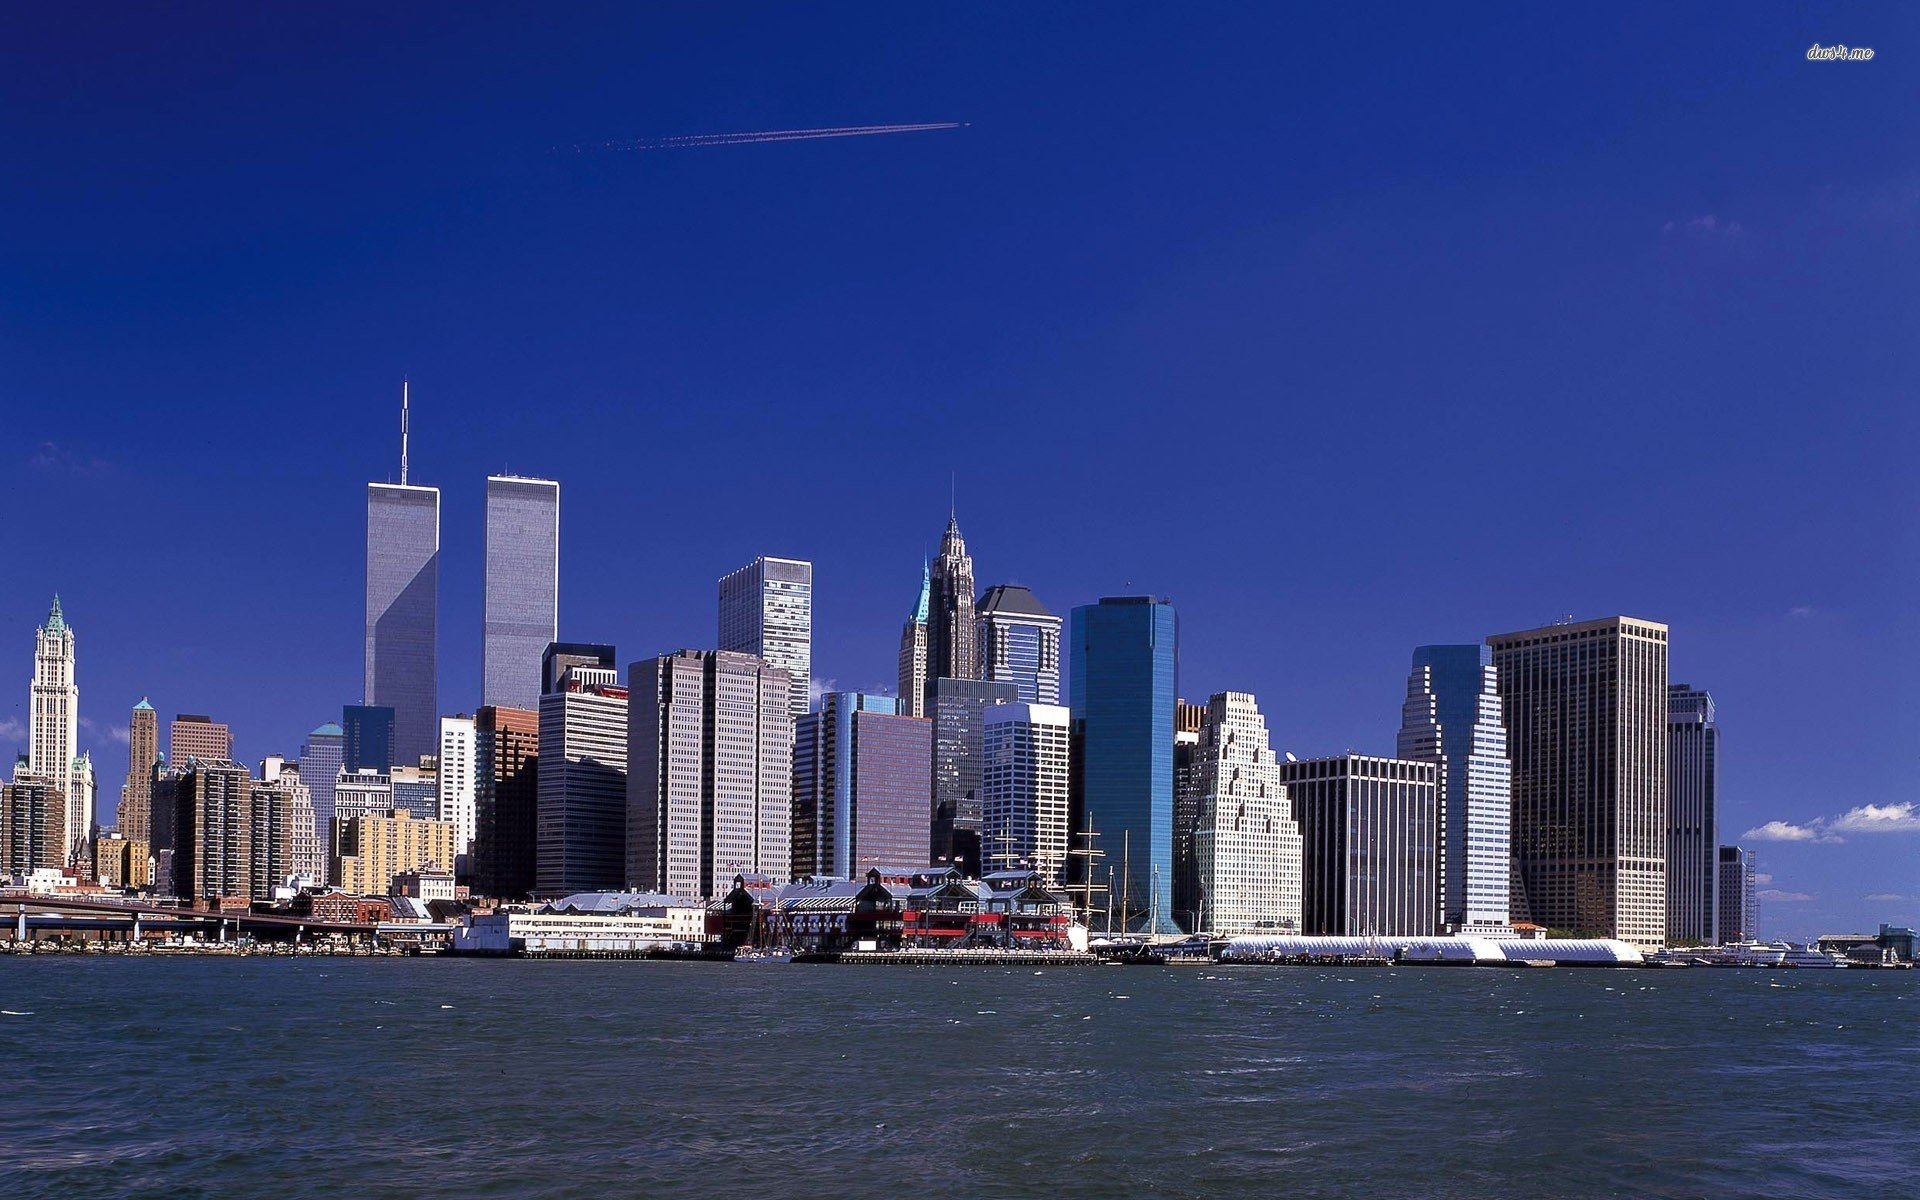 Manhattan skyline wallpaper wallpapersafari - New york skyline computer wallpaper ...